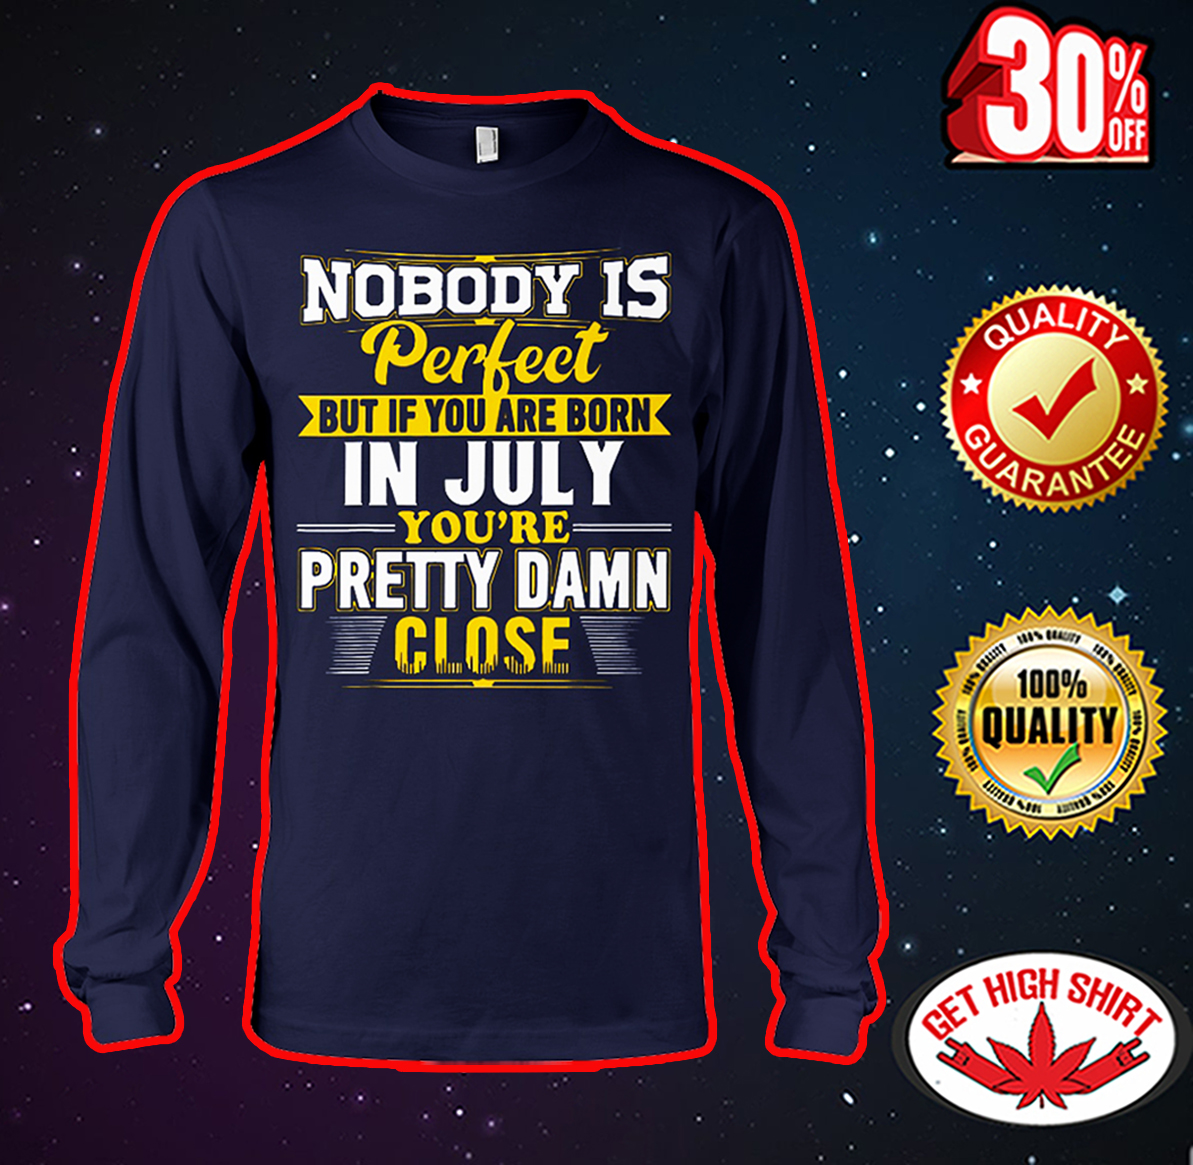 Nobody is perfect but if you are born in July you're pretty damn close long sleeve tee